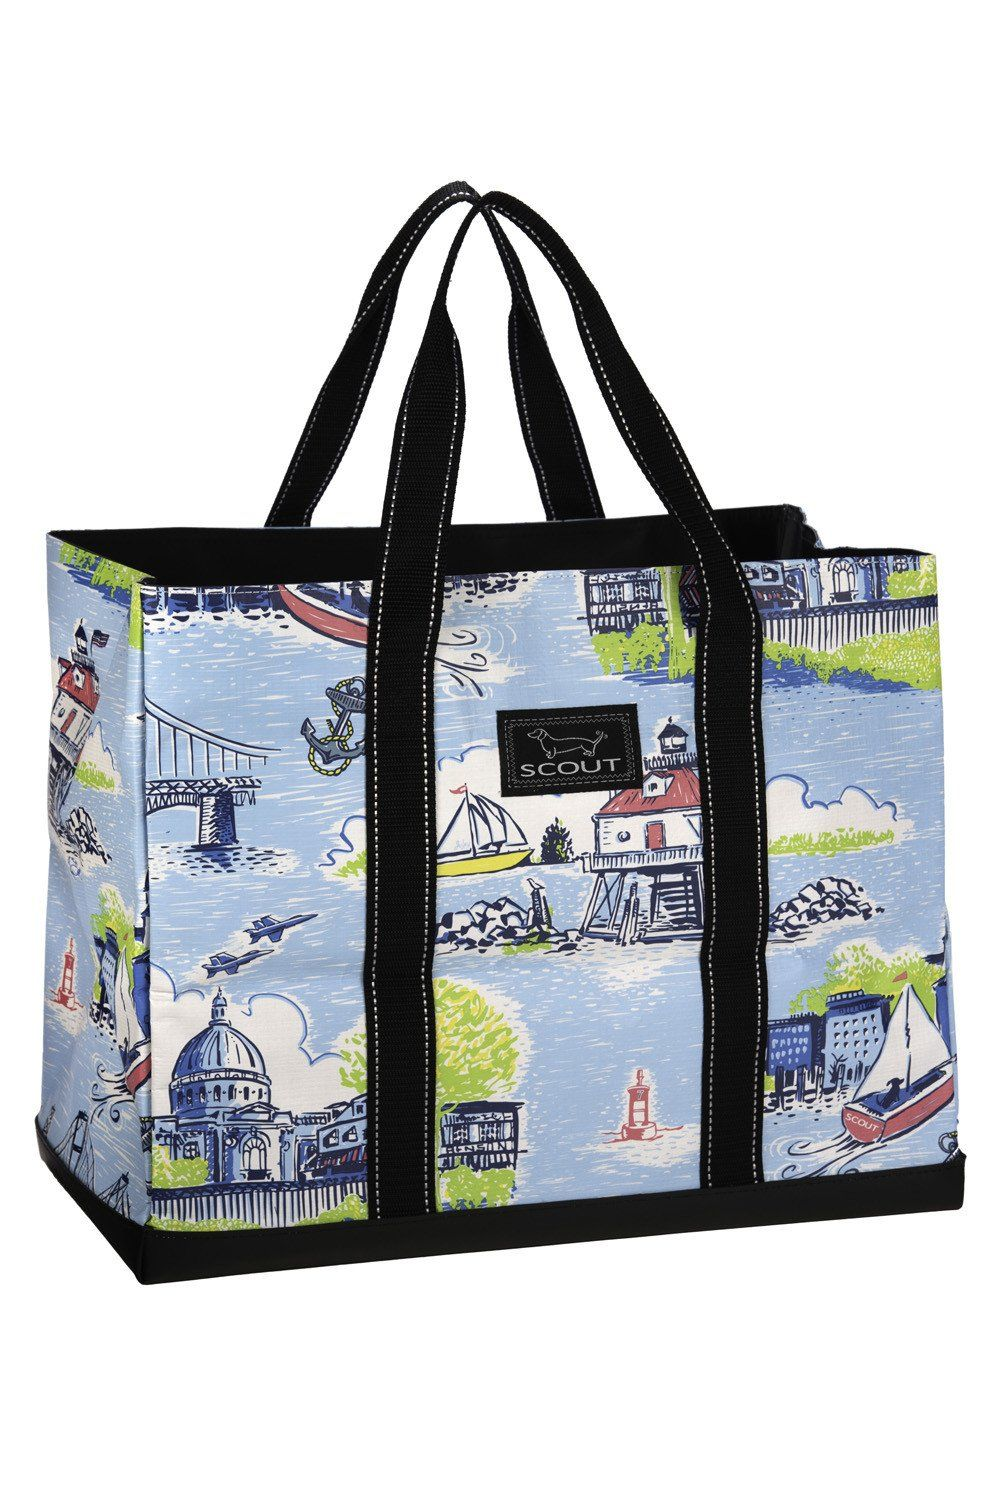 Great graduation gift  Whimsicality SCOUT bag! SCOUT Select Annapolis  pattern.  shopwhimsicality scoutbags annapolis graduationgift 0297355811516